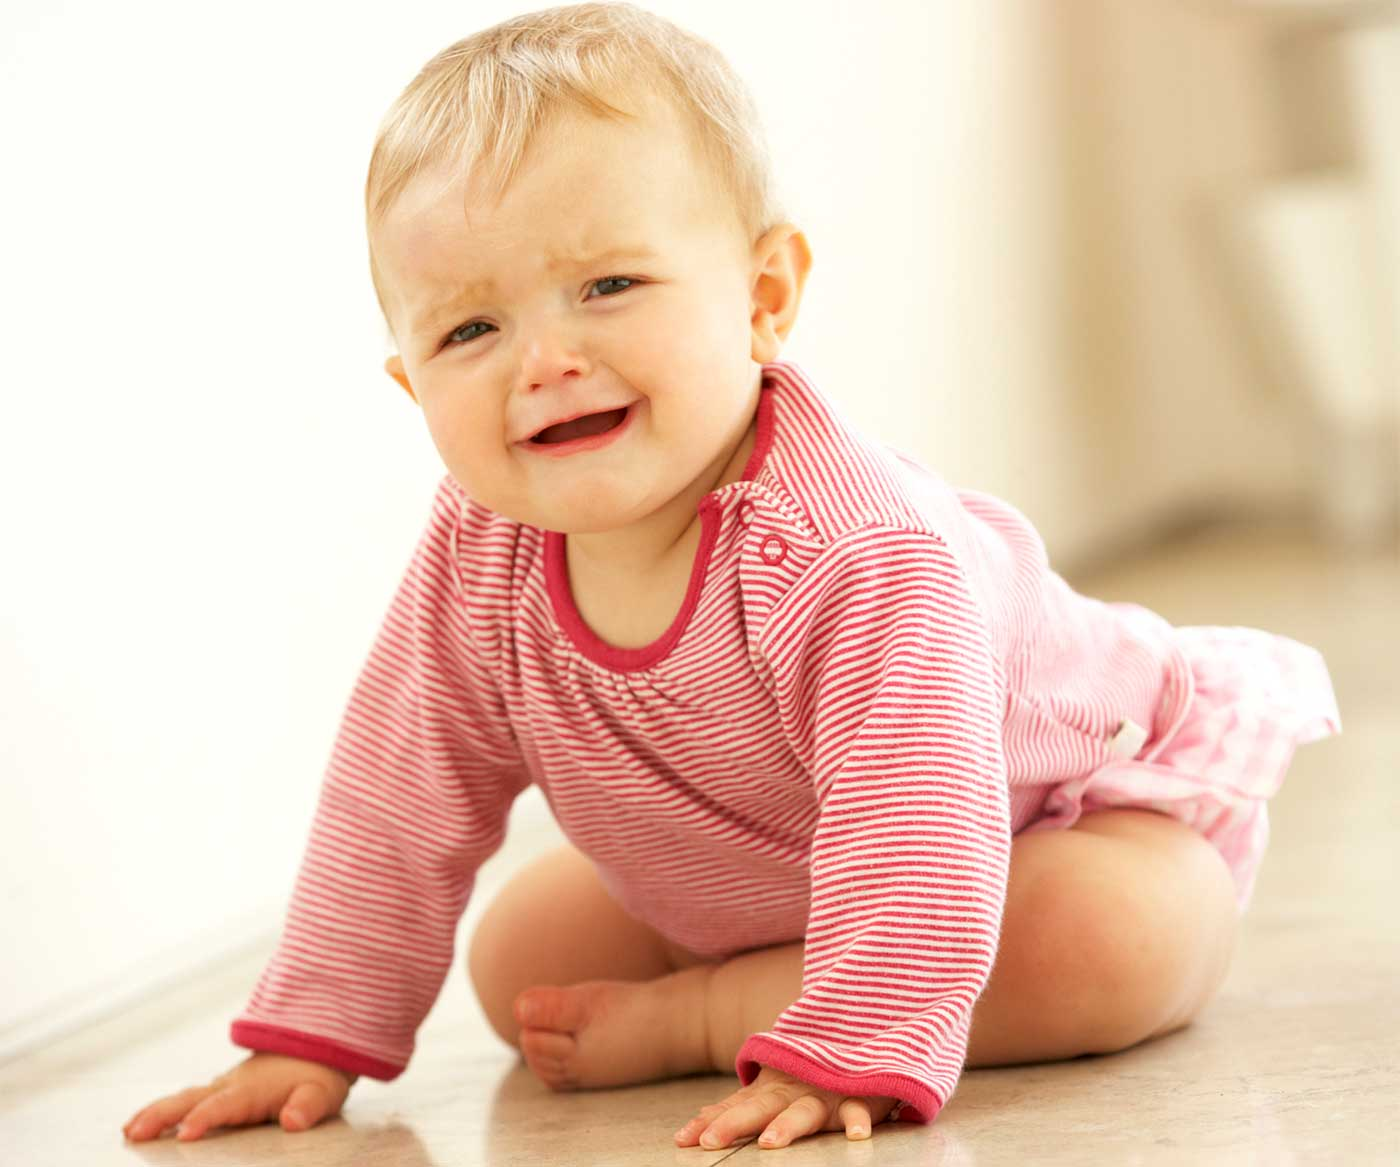 baby crying and sitting on the floor: separation anxiety in babies